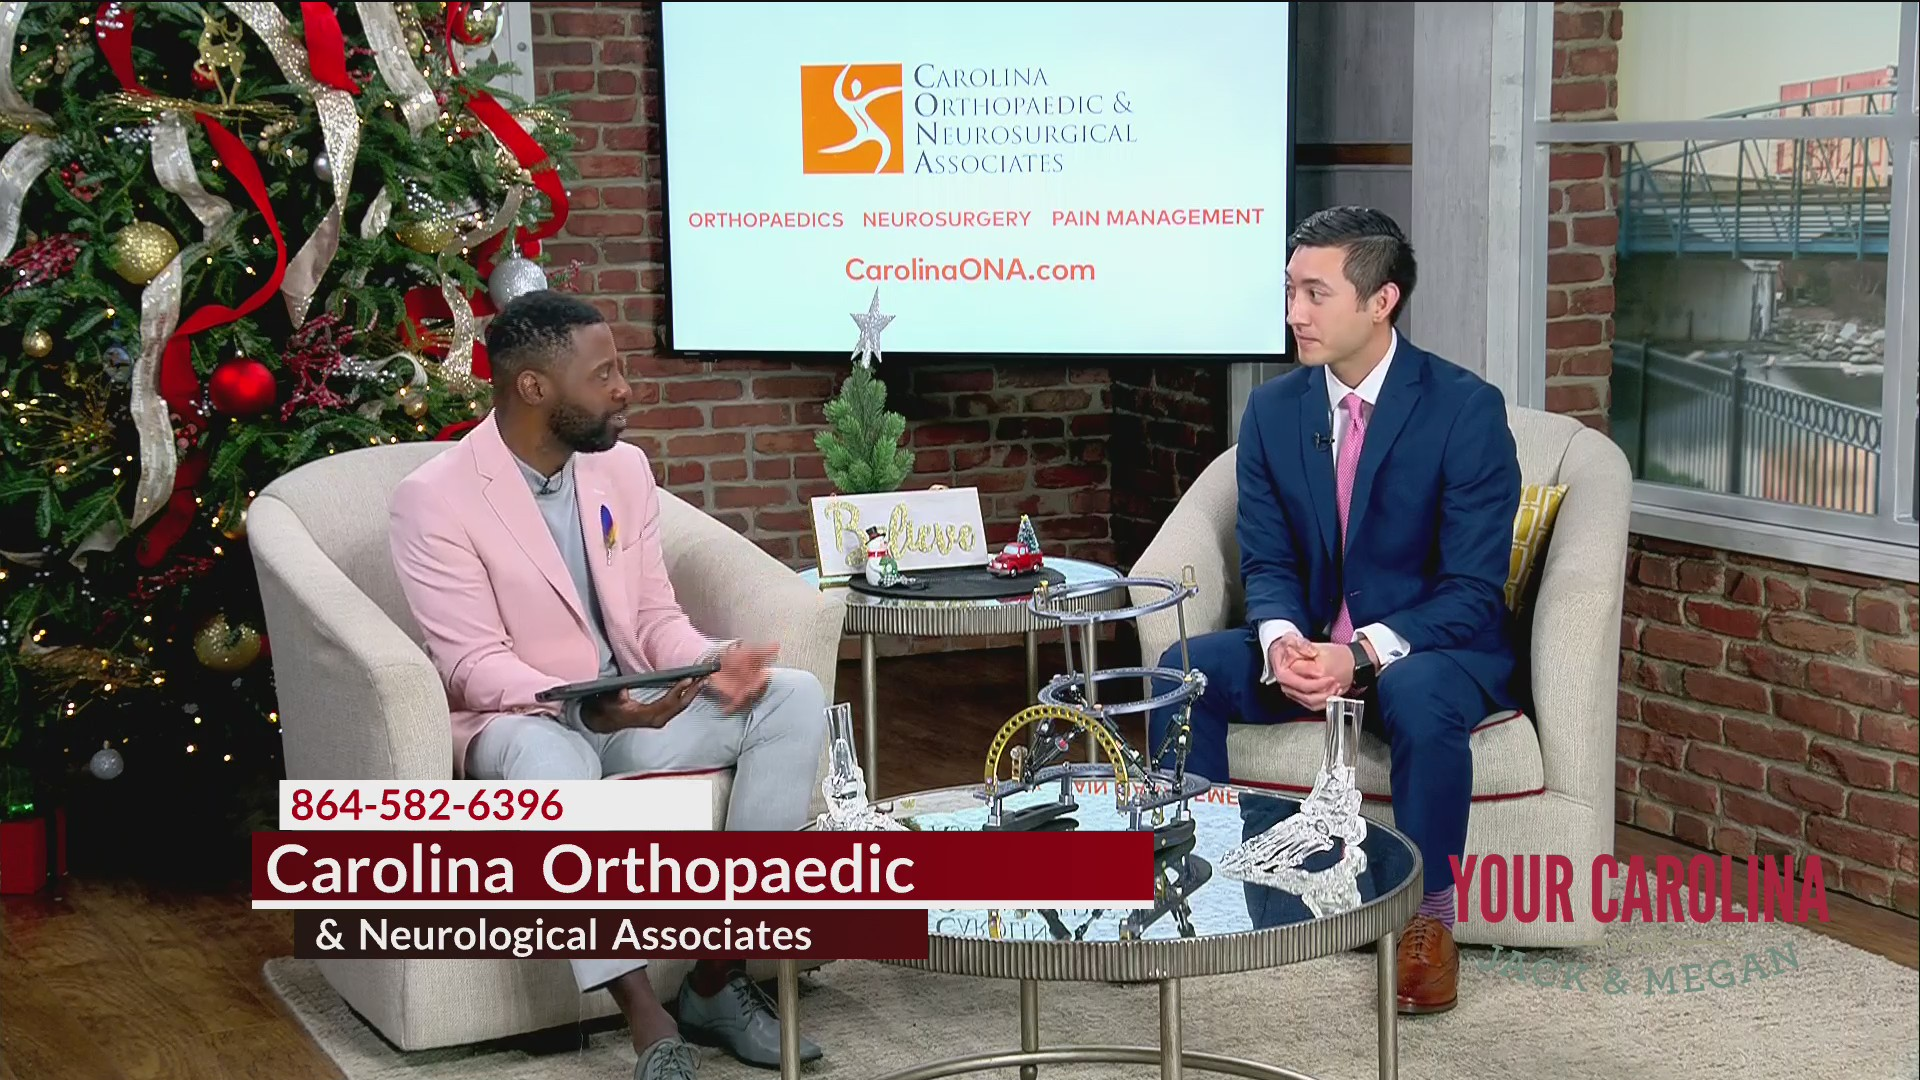 Carolina Orthopaedic & Neurological Associates - Treating Disorders Of The Foot And Ankle